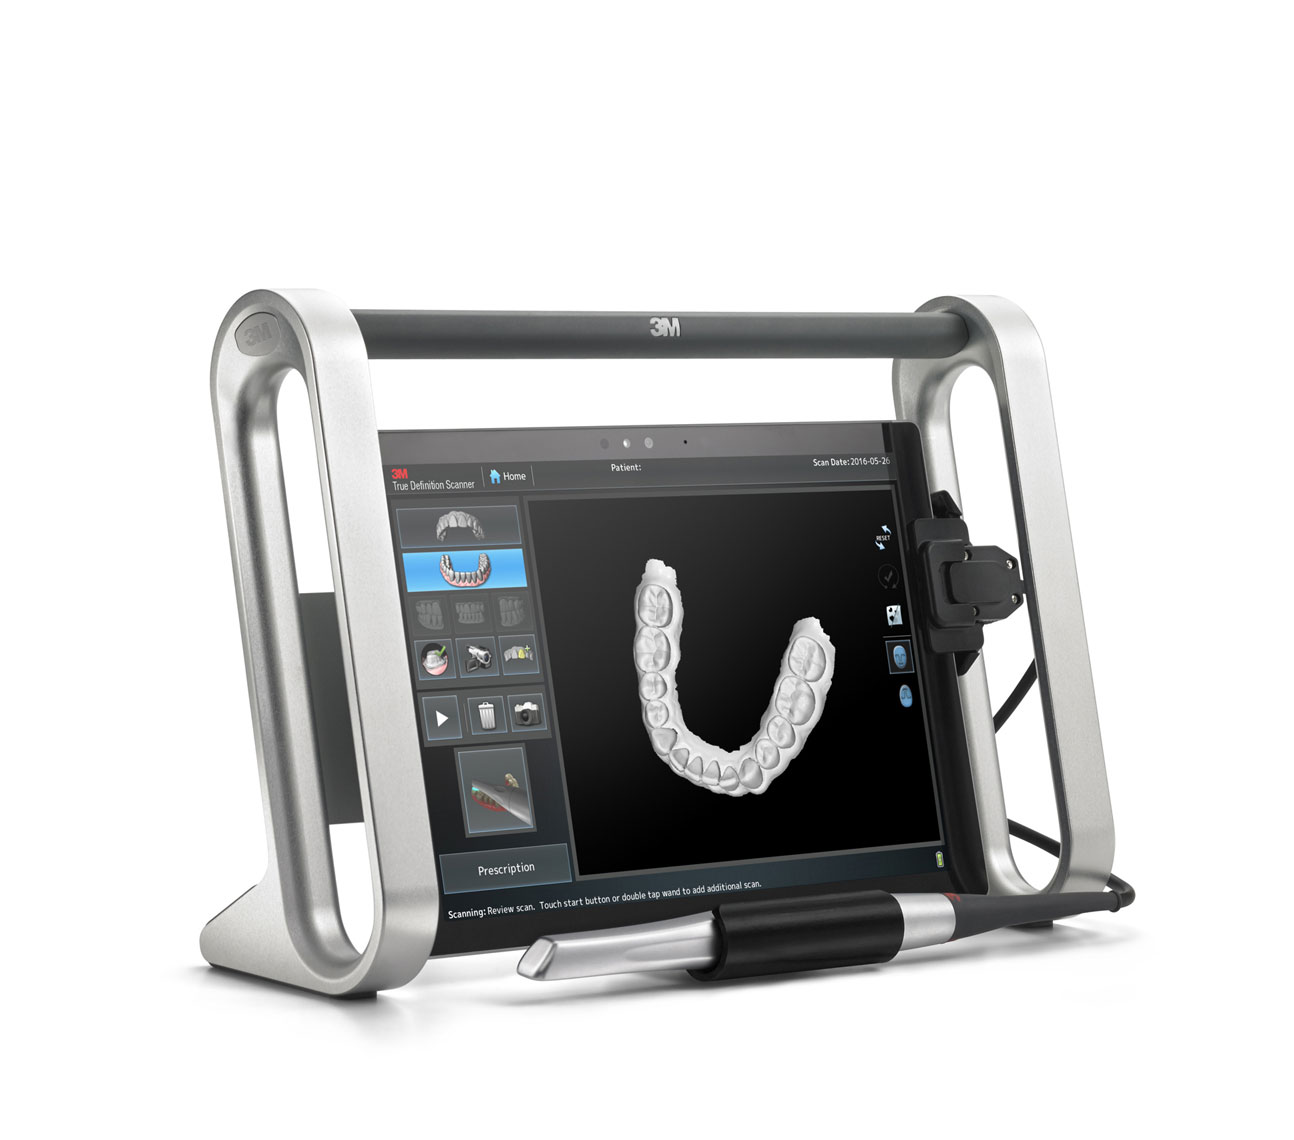 Teeth scanner/3M dental/product photography